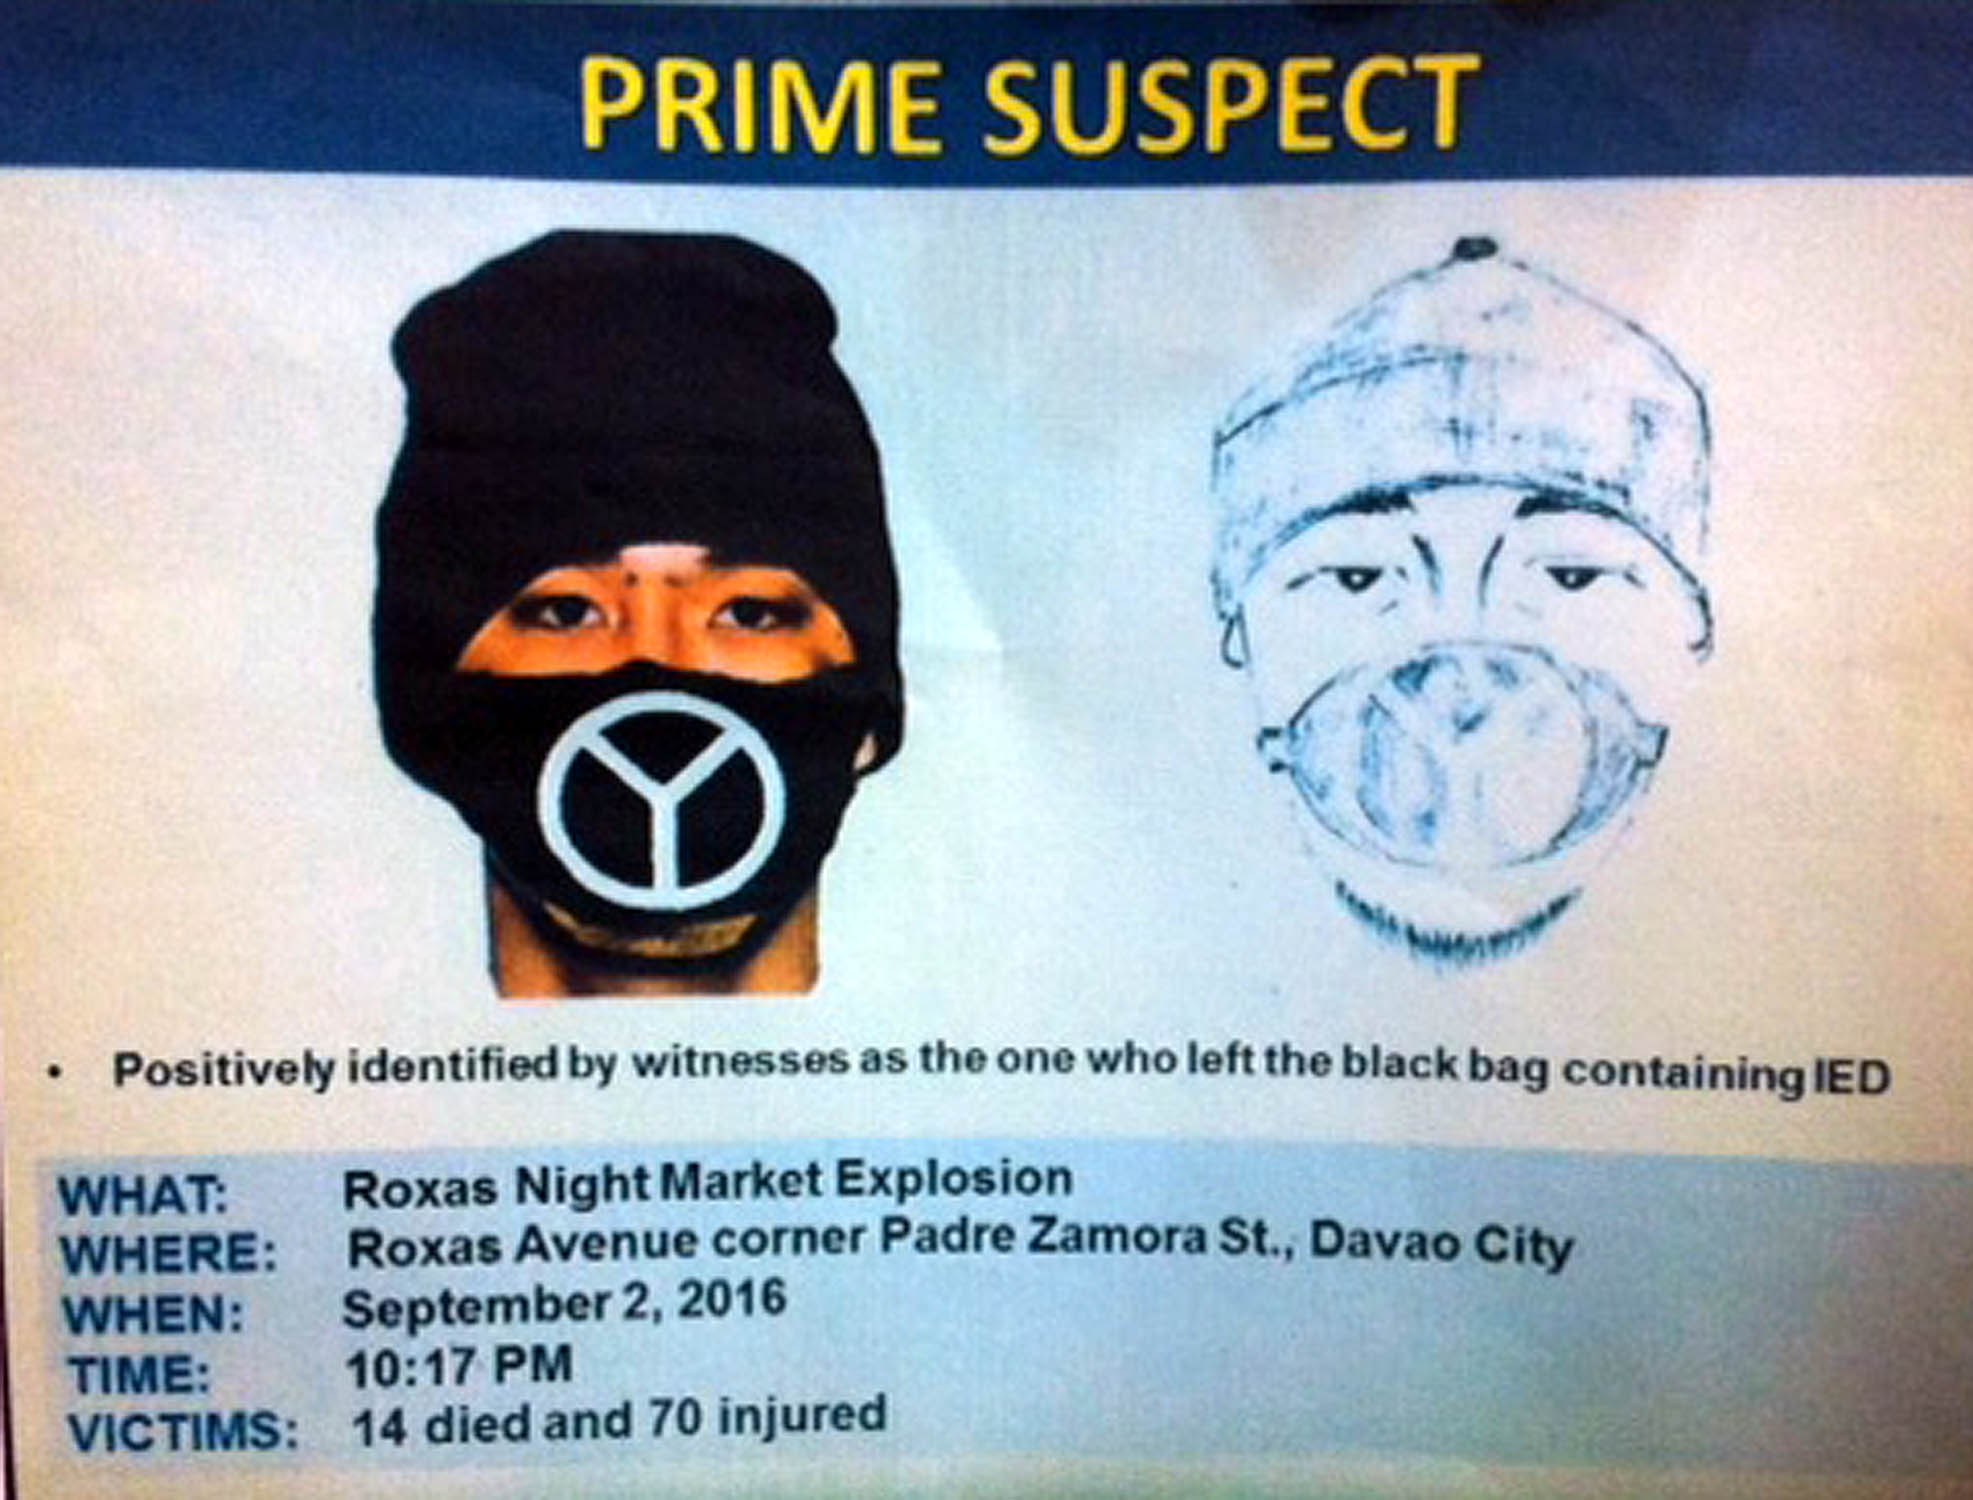 DAVAO CITY - Philippine National Police (PNP) regional office XI released the computerized facial composite (right) and the artist sketch (left) of the prime suspect of last Friday night market explosion along Roxas Avenue that left 14 dead and 70 wounded. (Photo: Lilian Mellejor/PNA)